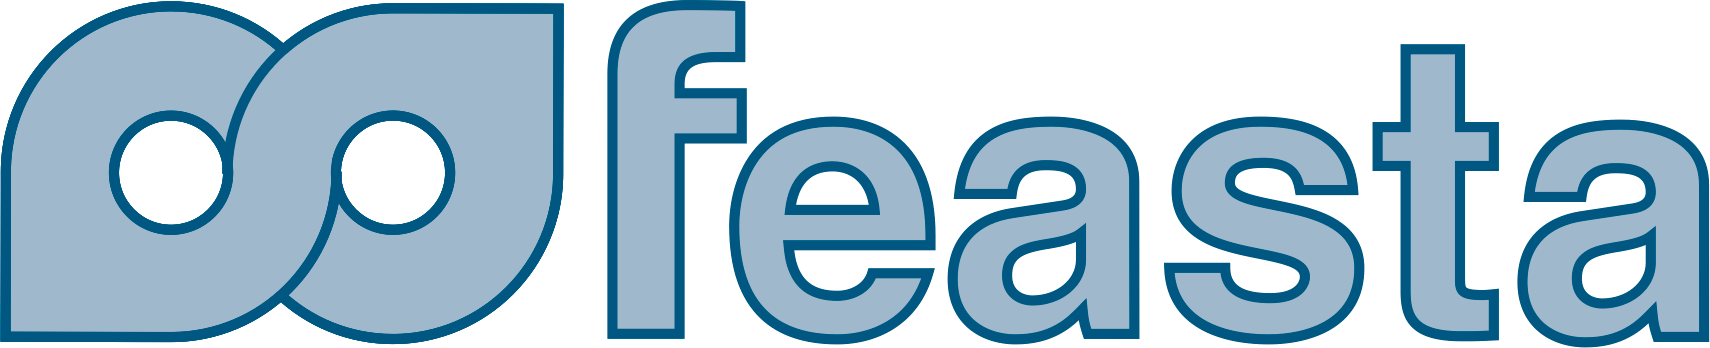 Feasta - Foundation for the economics of sustainability